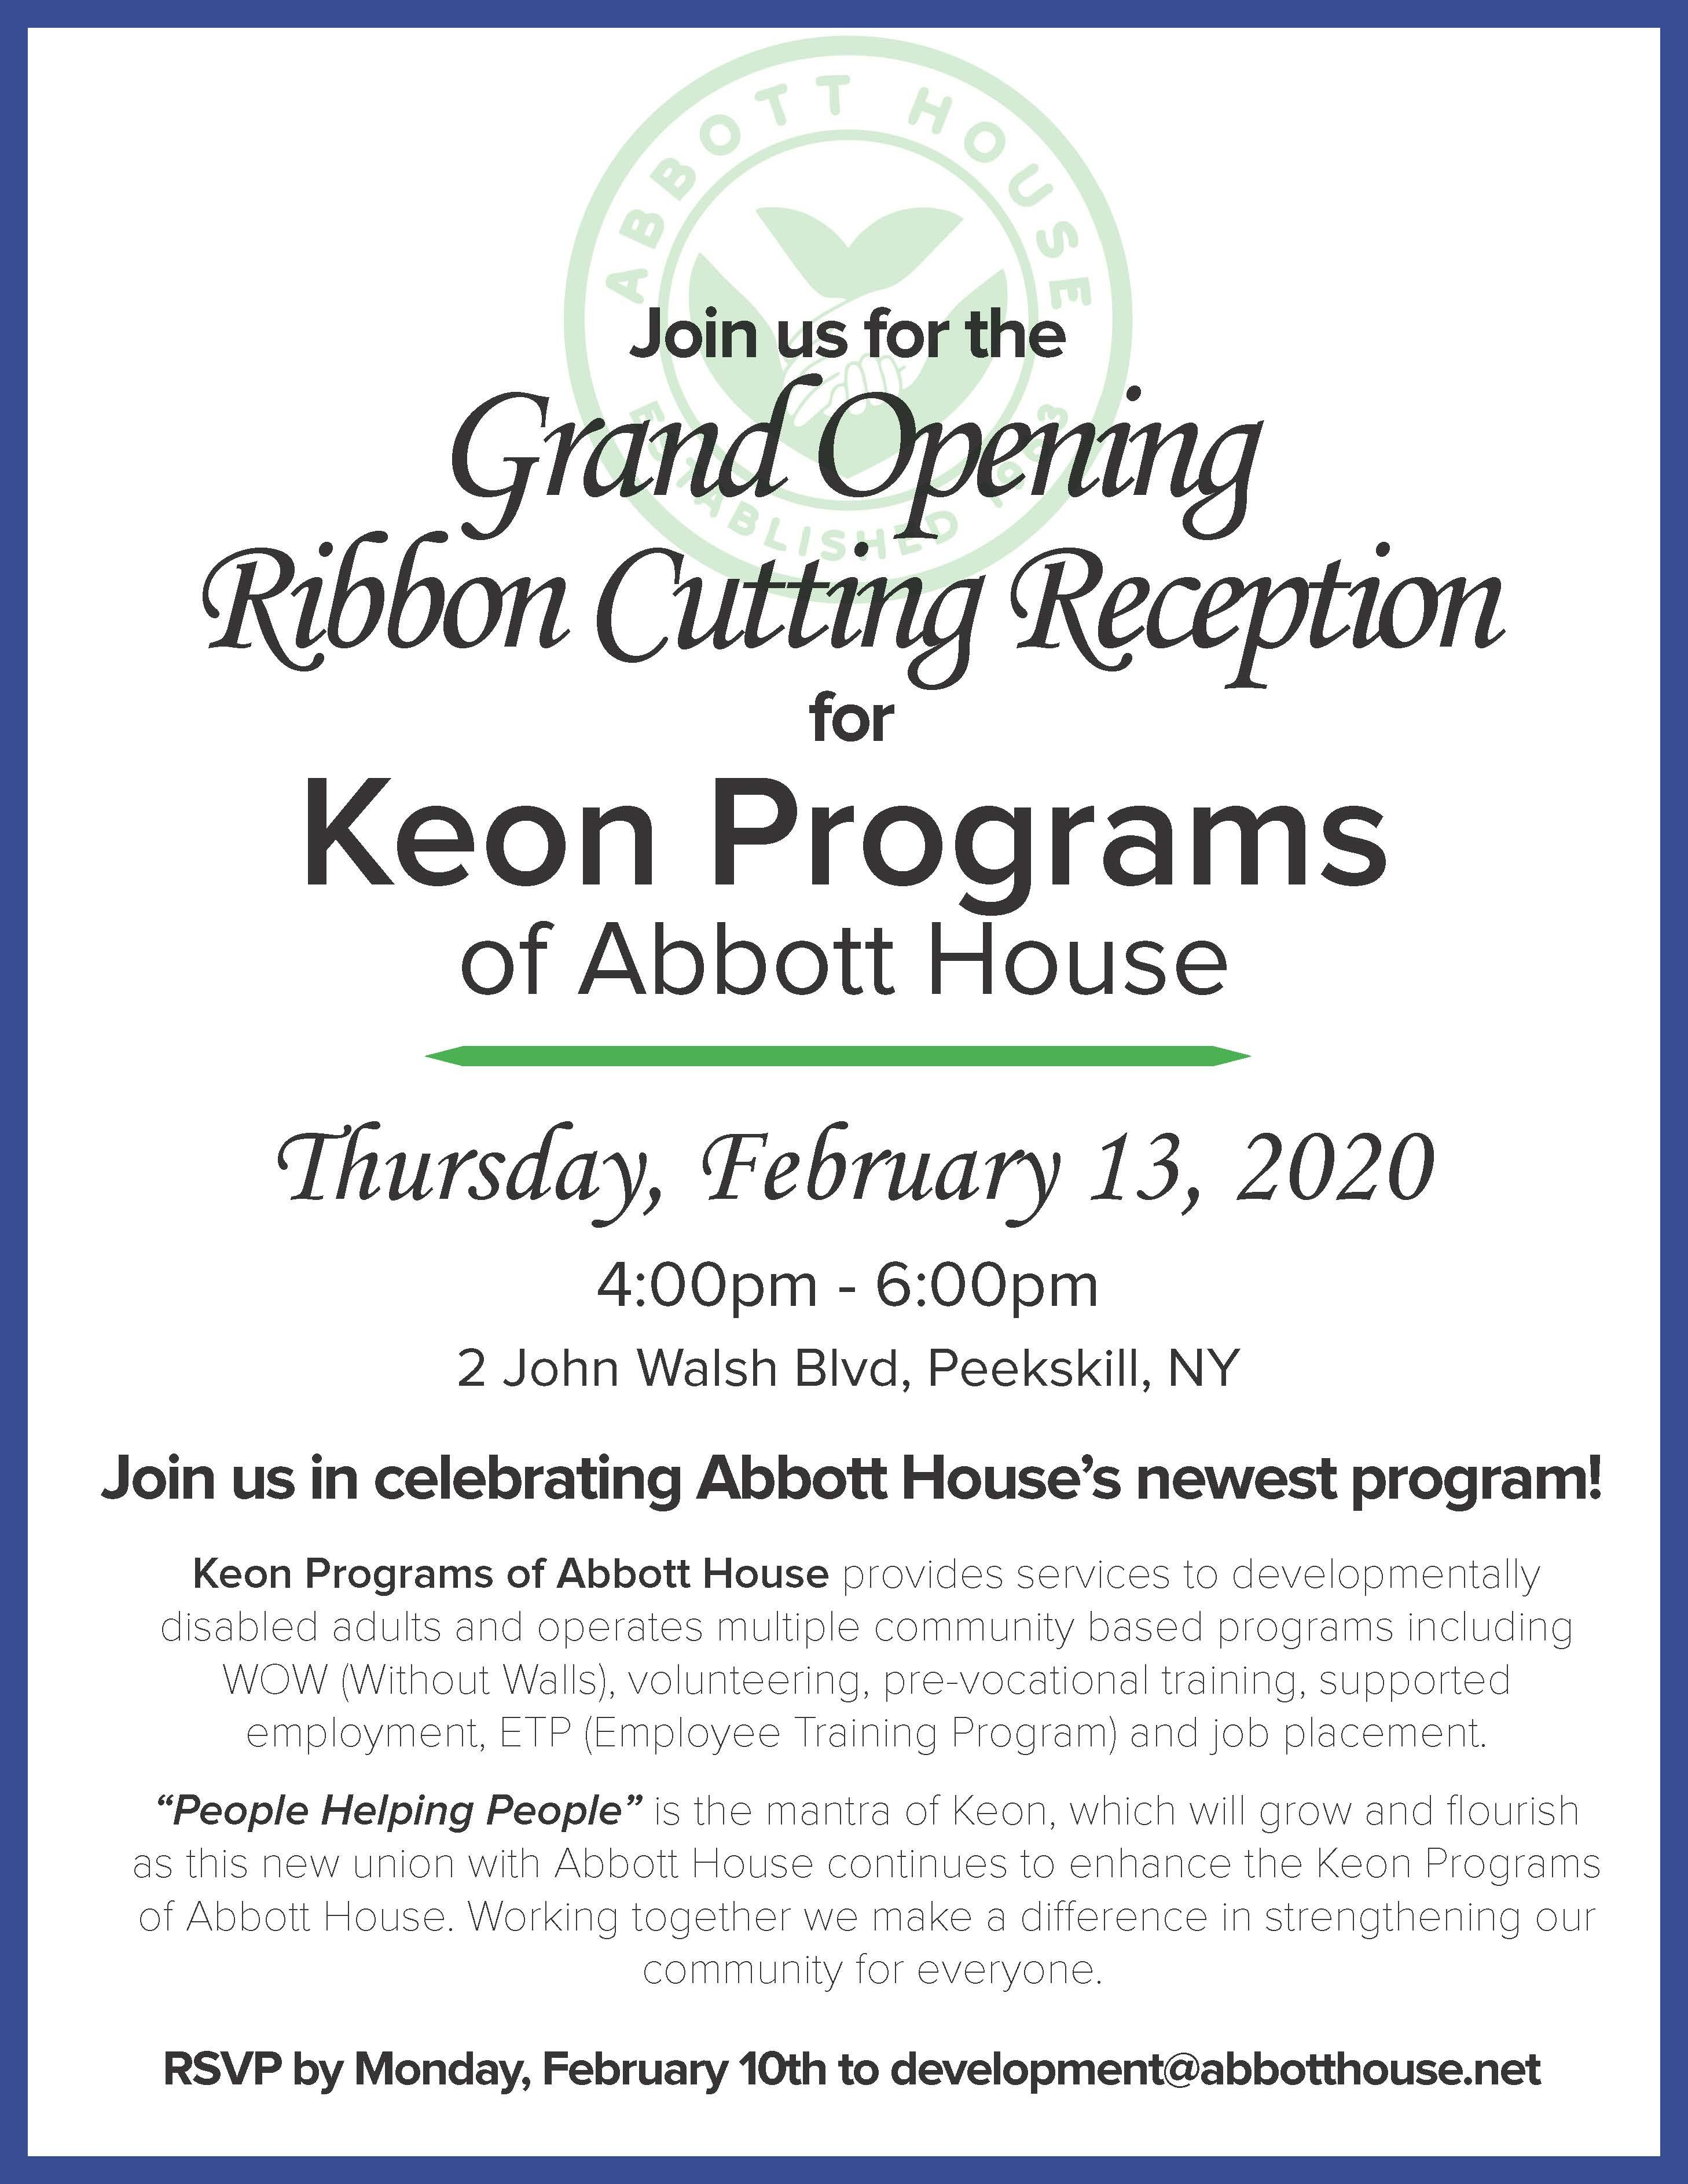 Join Us for the Opening Reception on February 13, 2020